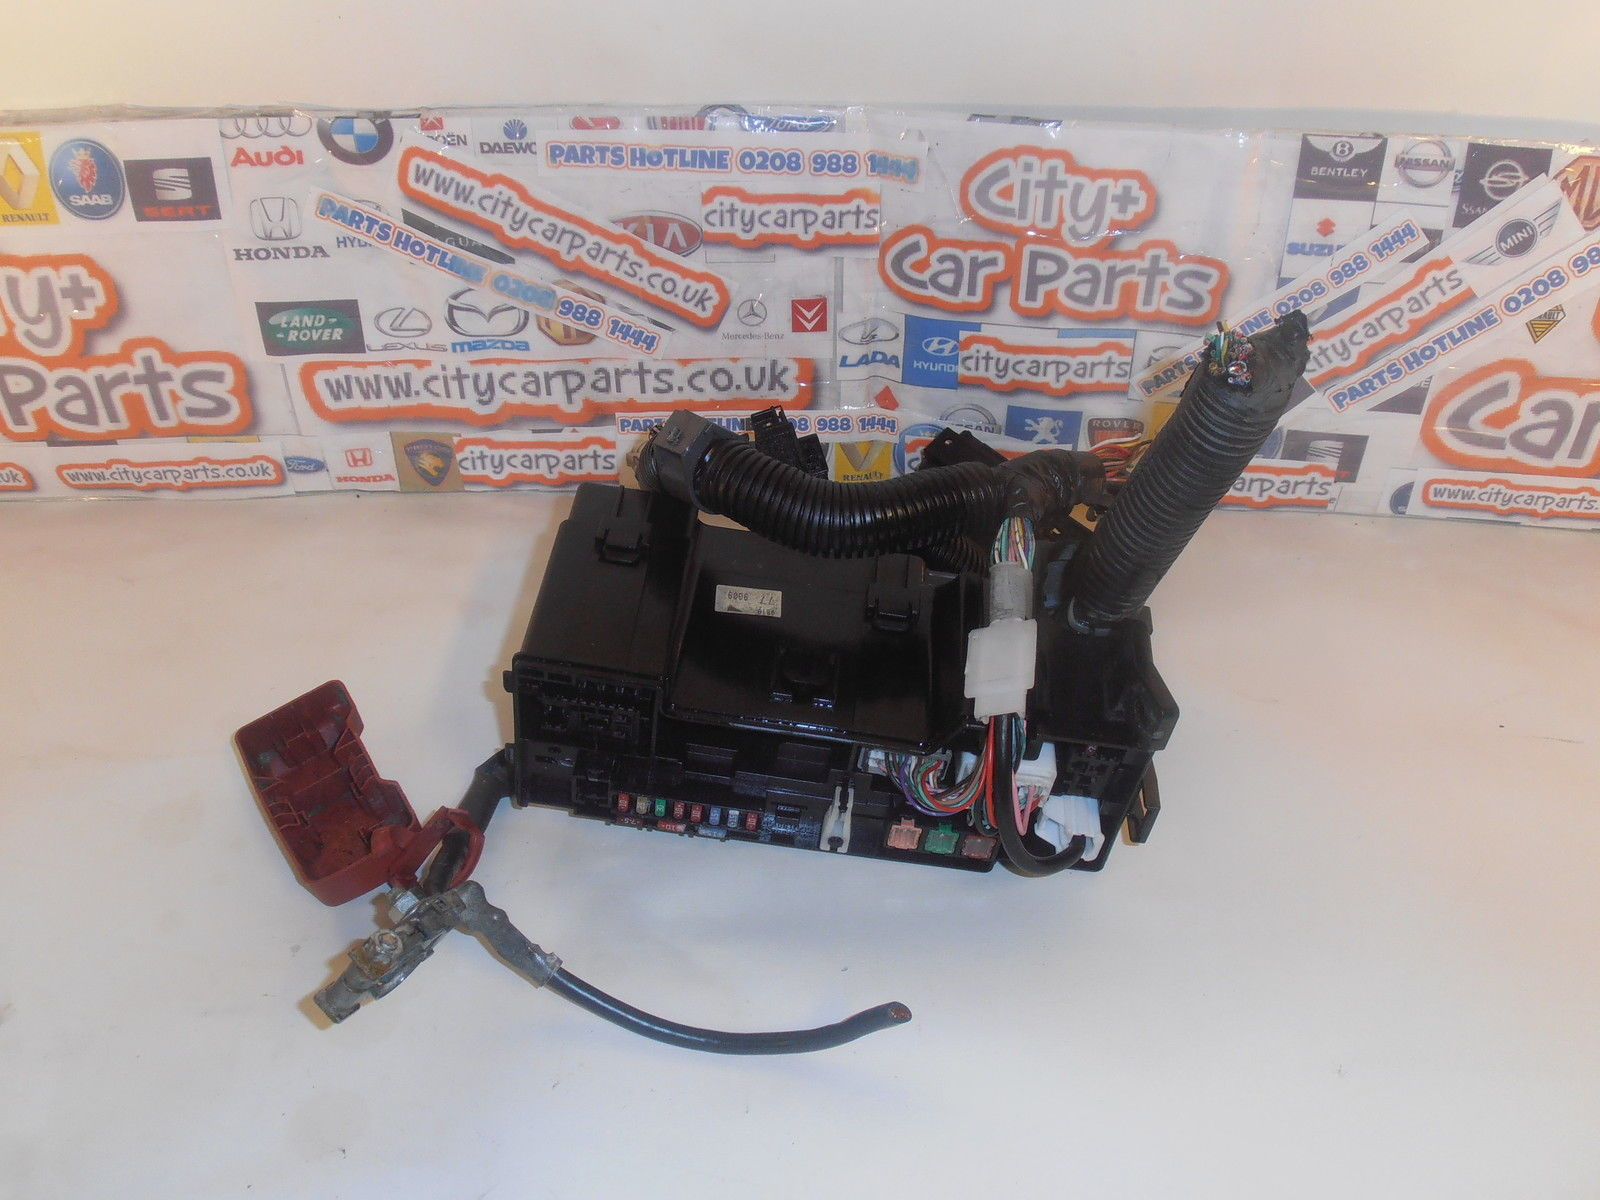 2003 Toyota Rav4 Oxygen Sensor Fuse Circuit Wiring And Diagram Hub Box Location Auris 2004